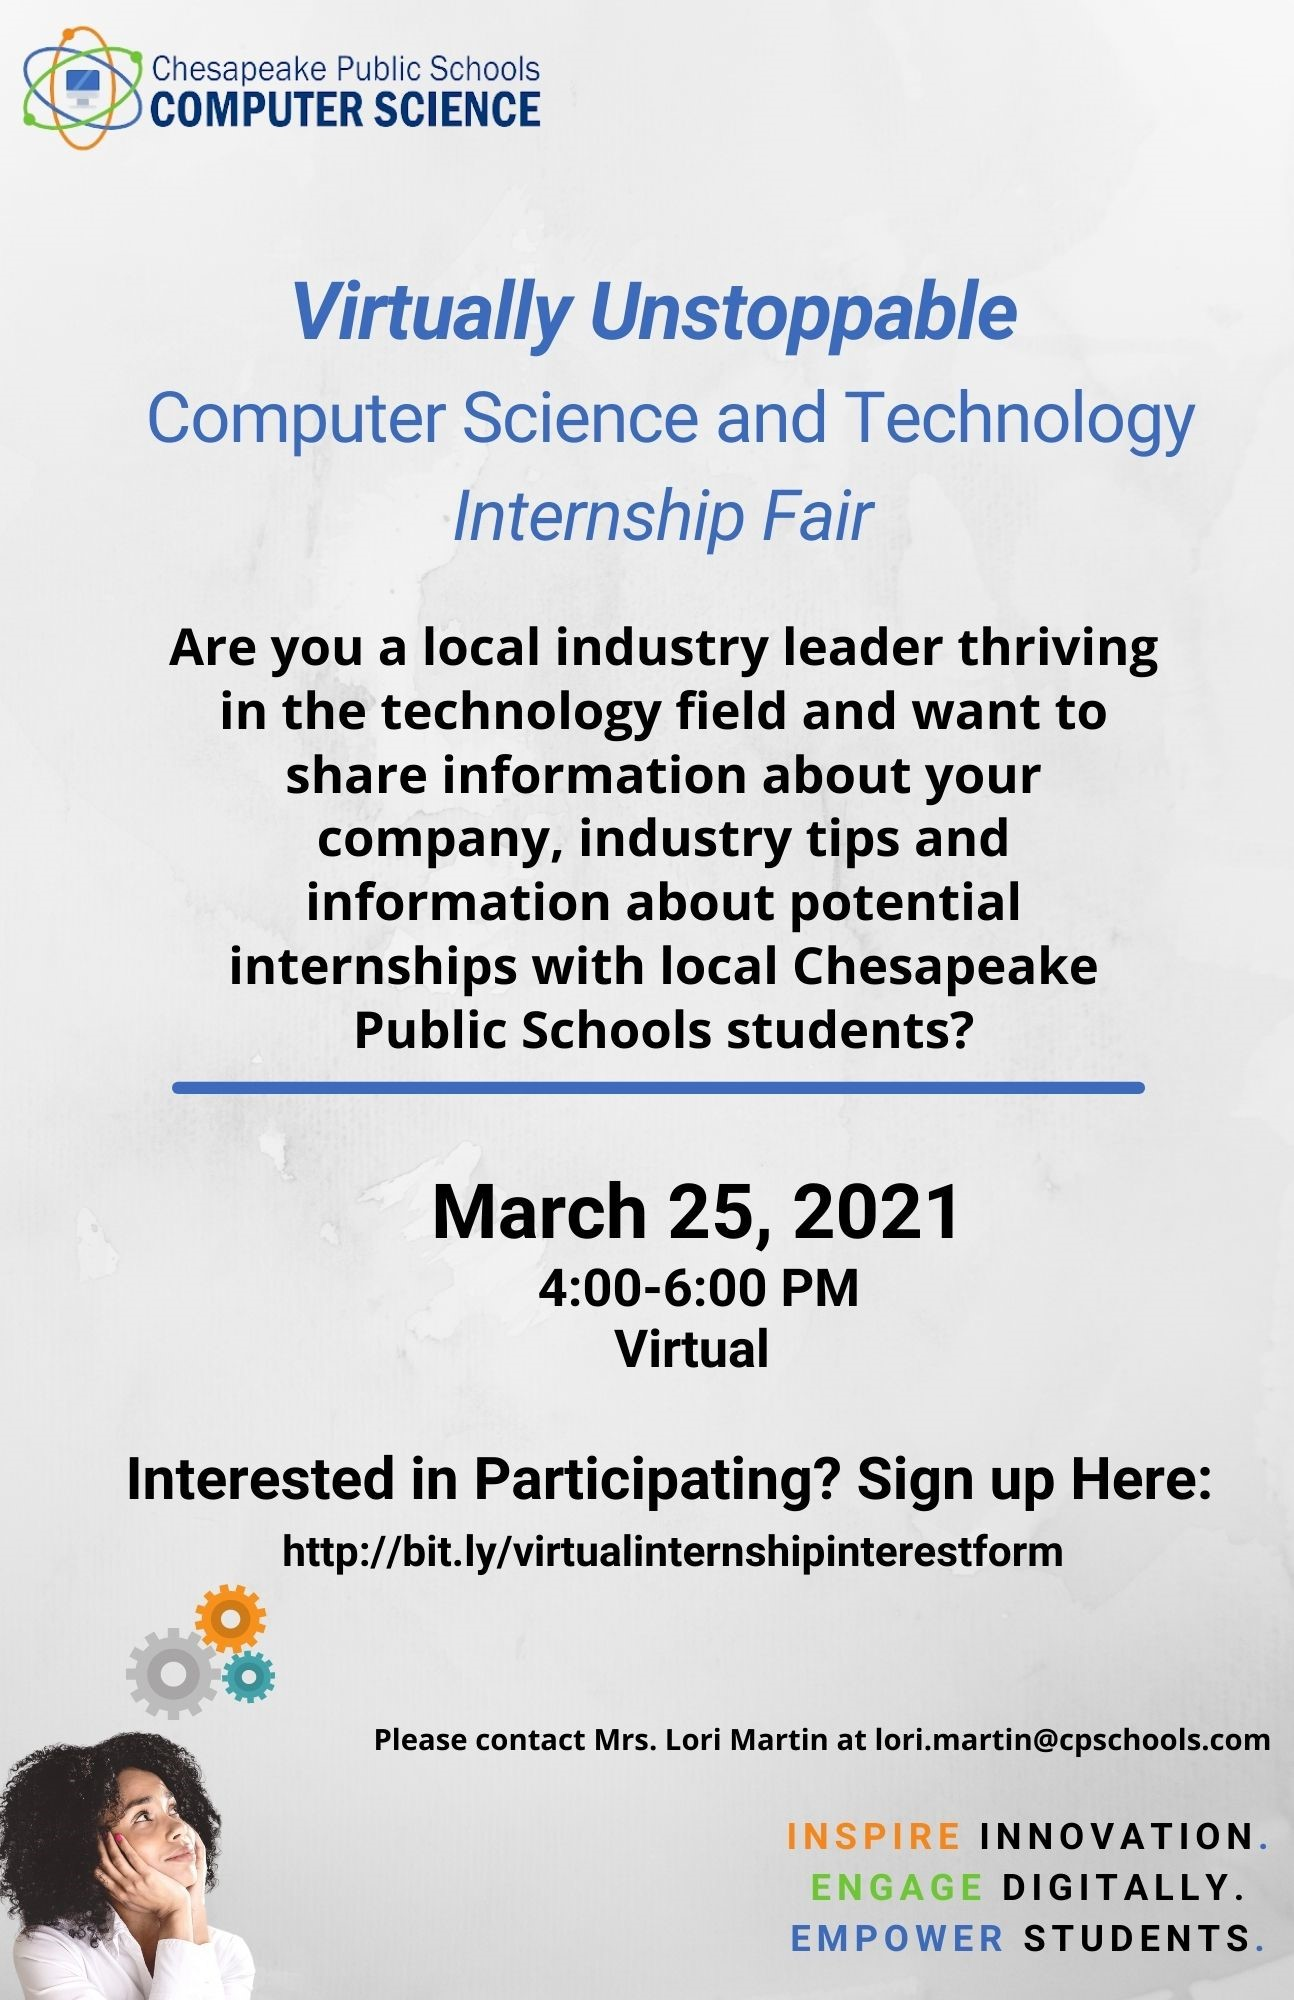 Chesapeake Public Schools Internship Fair - Businesses Needed